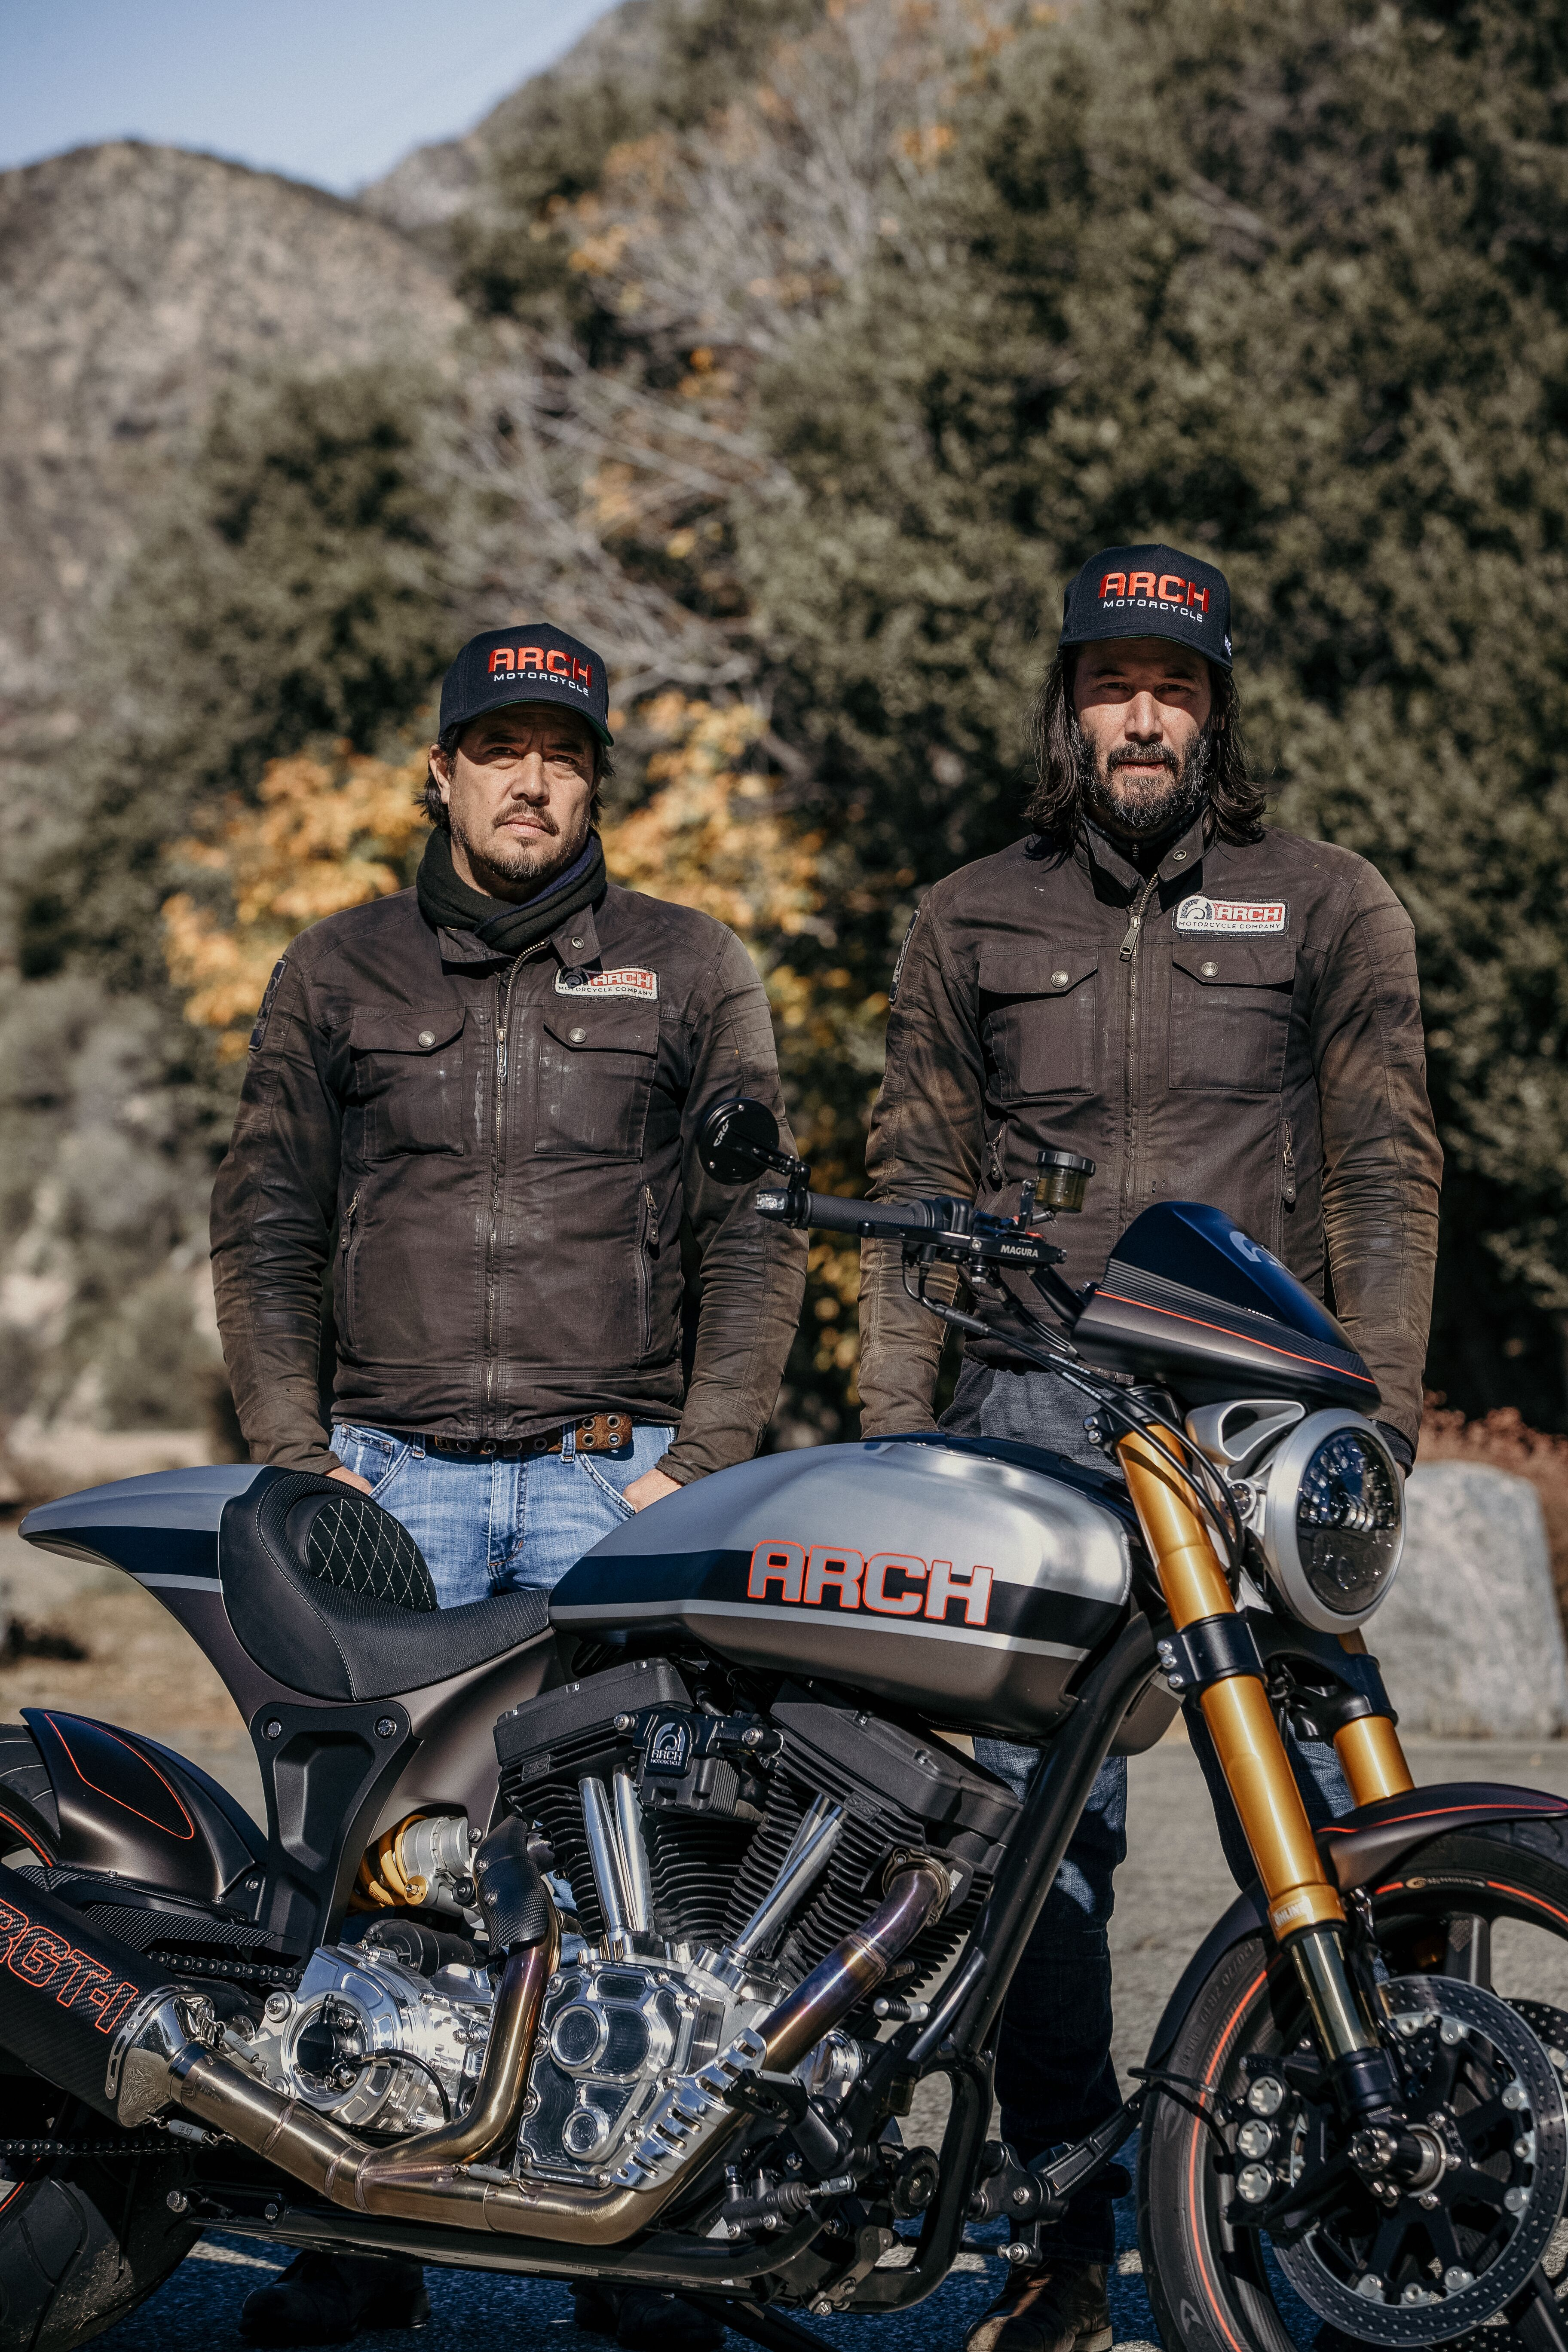 Keanu Reeves showing off Arch motorcycles KRGT-1